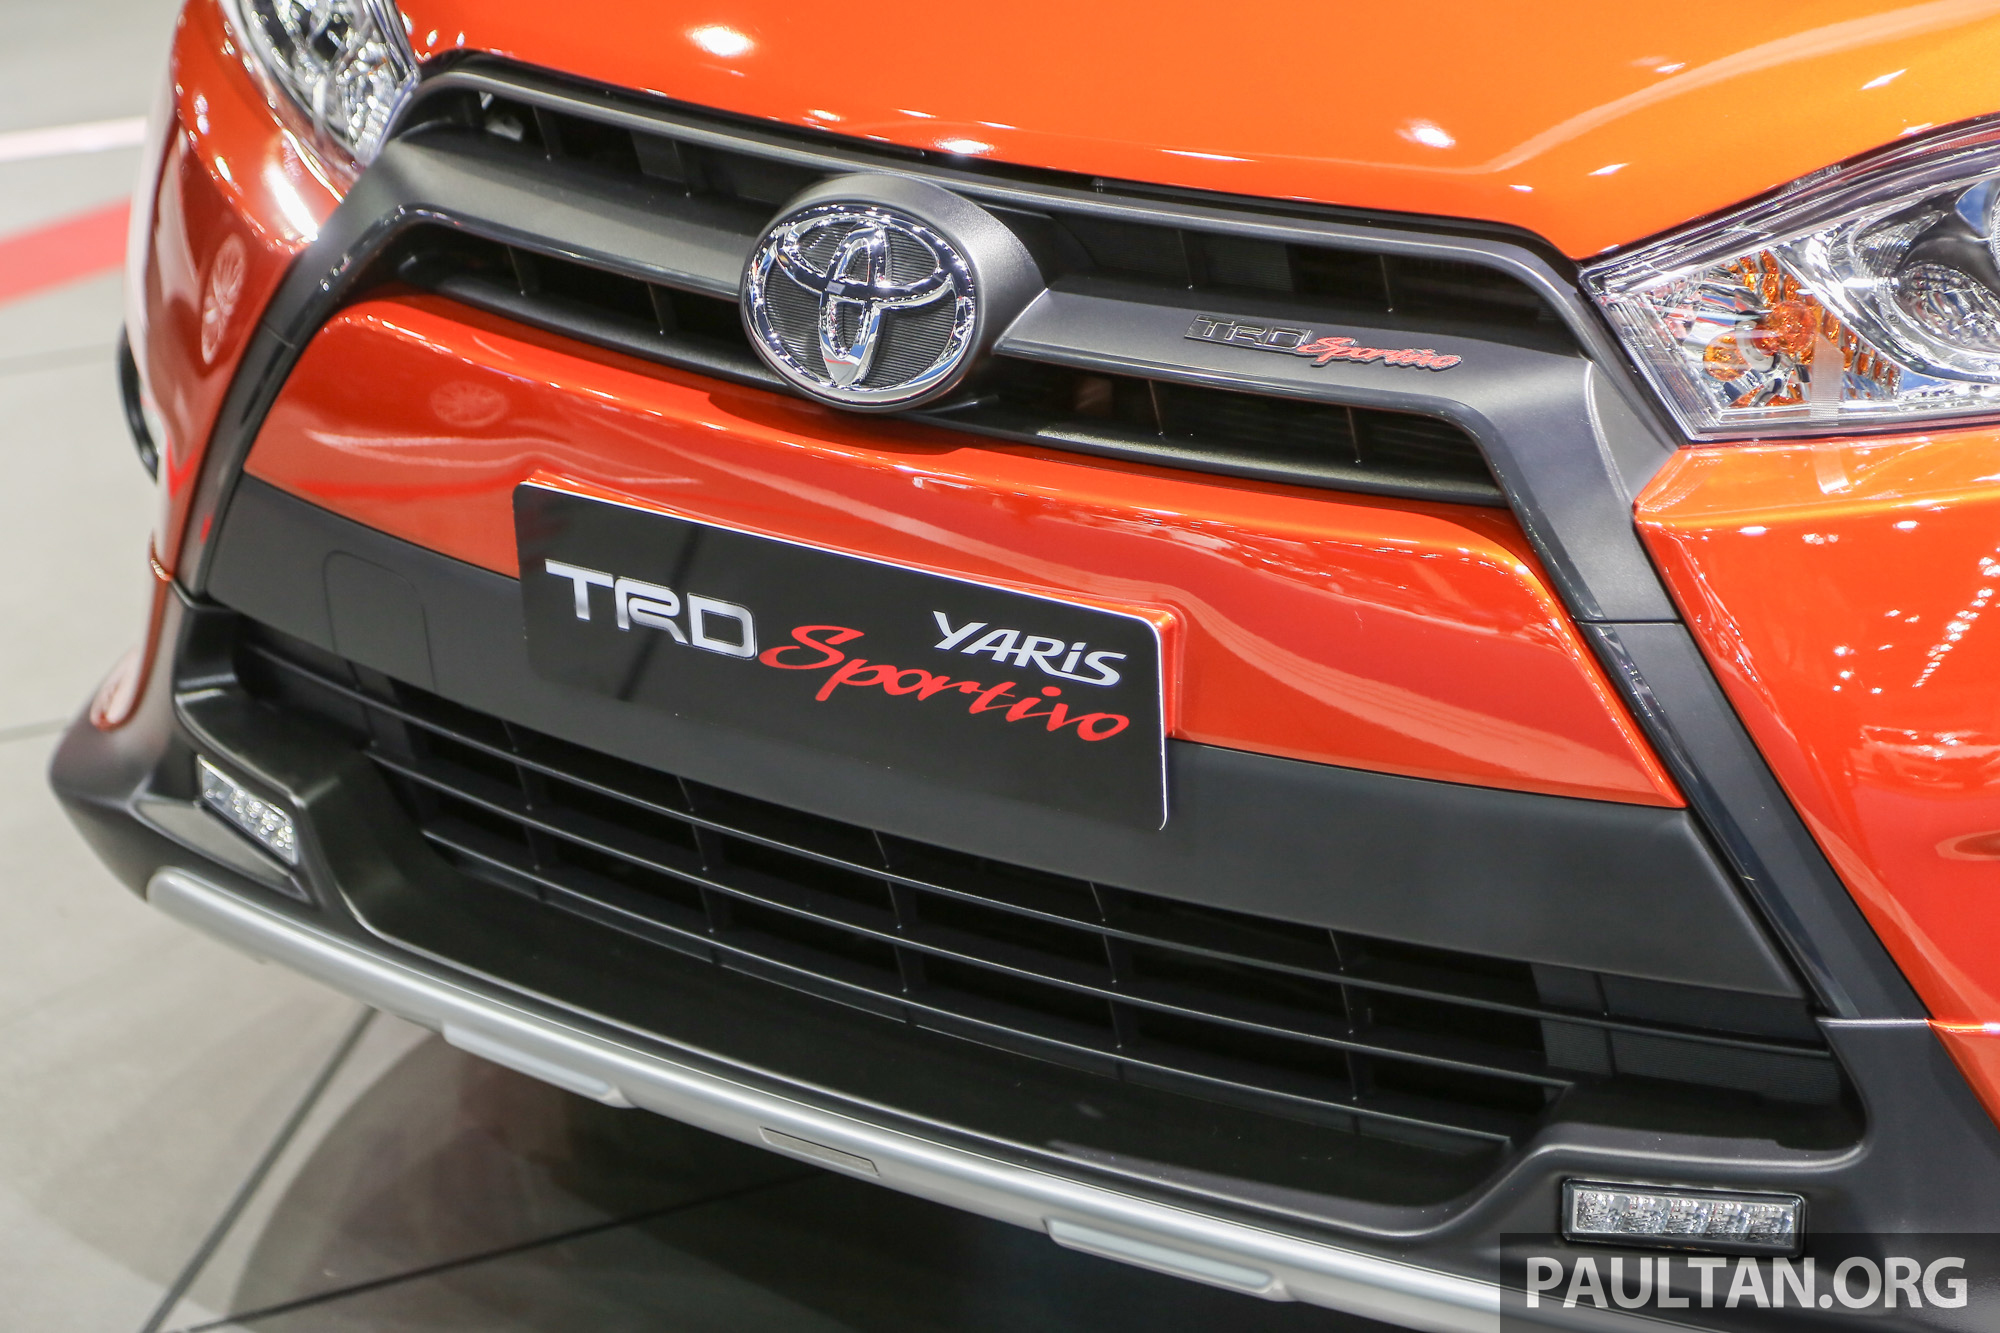 toyota yaris trd filter udara grand new avanza gallery sportivo at bangkok 2016 paul